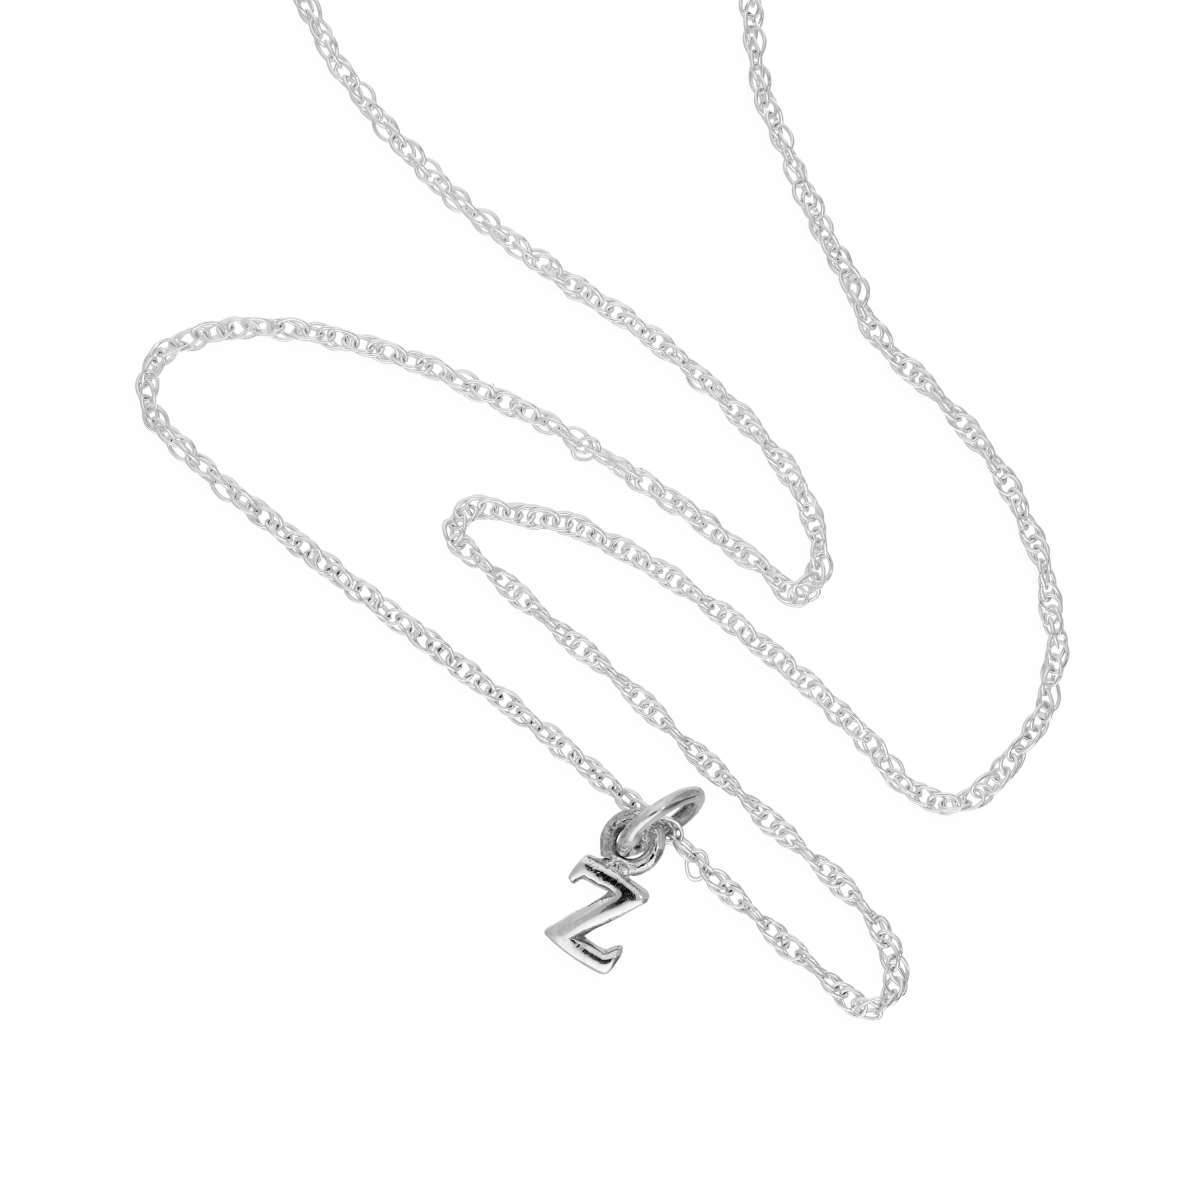 Alterative image for Tiny Sterling Silver Alphabet Letter Z Pendant Necklace 14 - 22 Inches